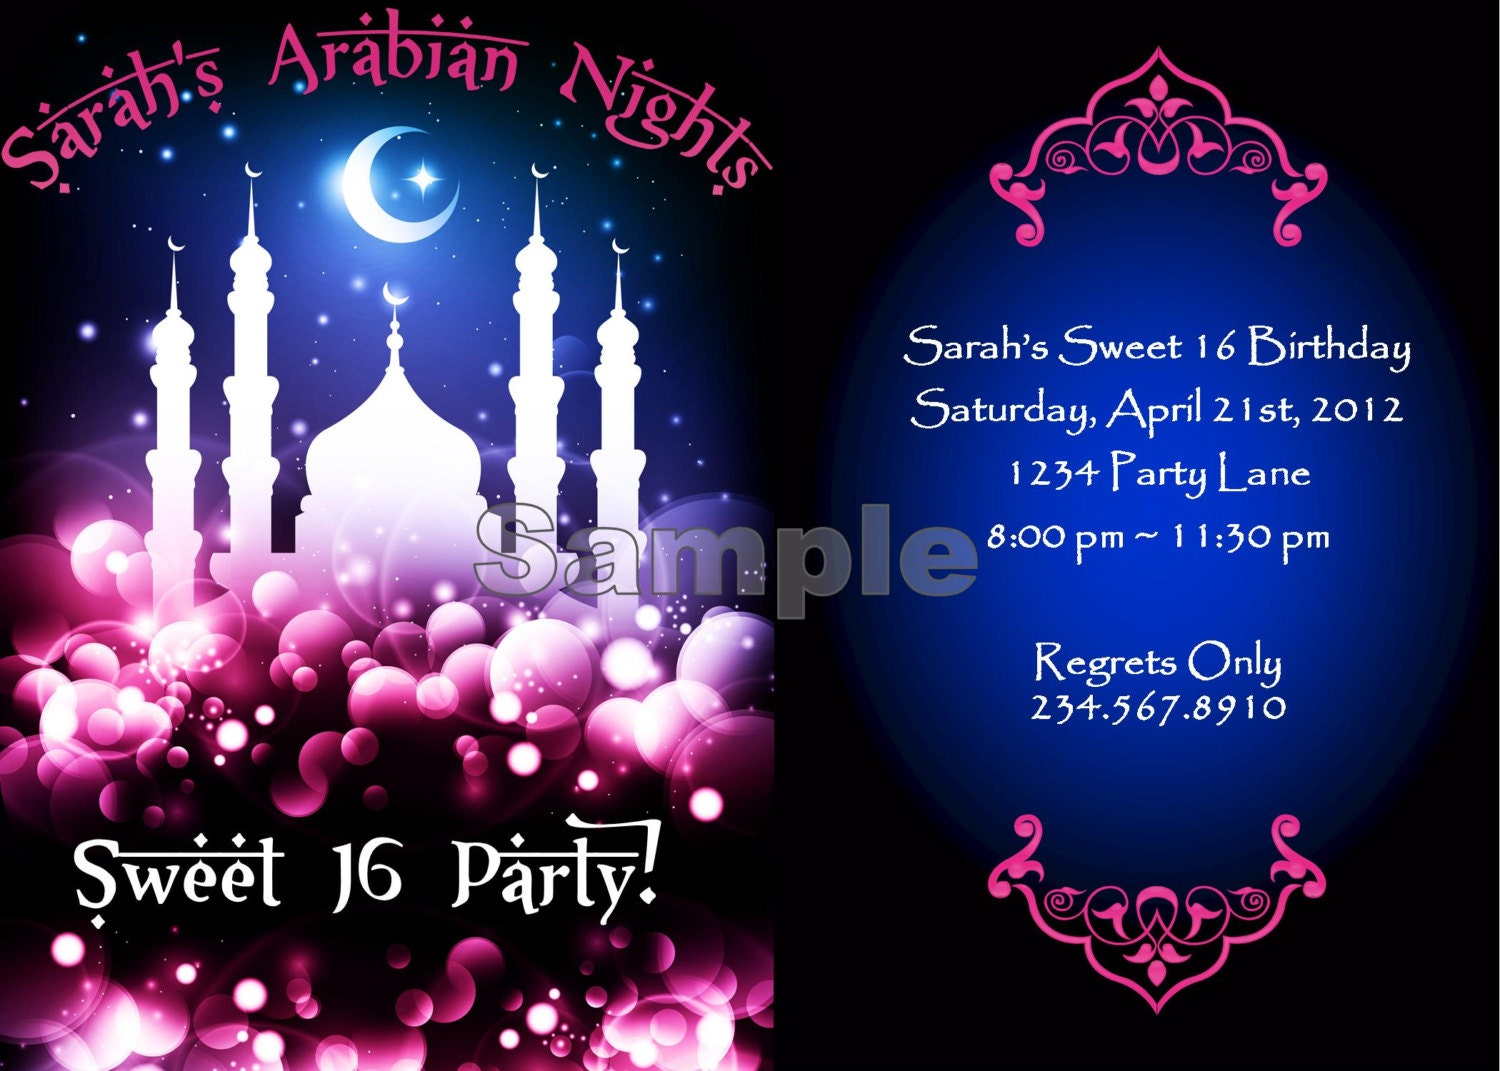 arabian nights, harem nights, 1001 arabian nights, bridal shower, birthday, part, invites